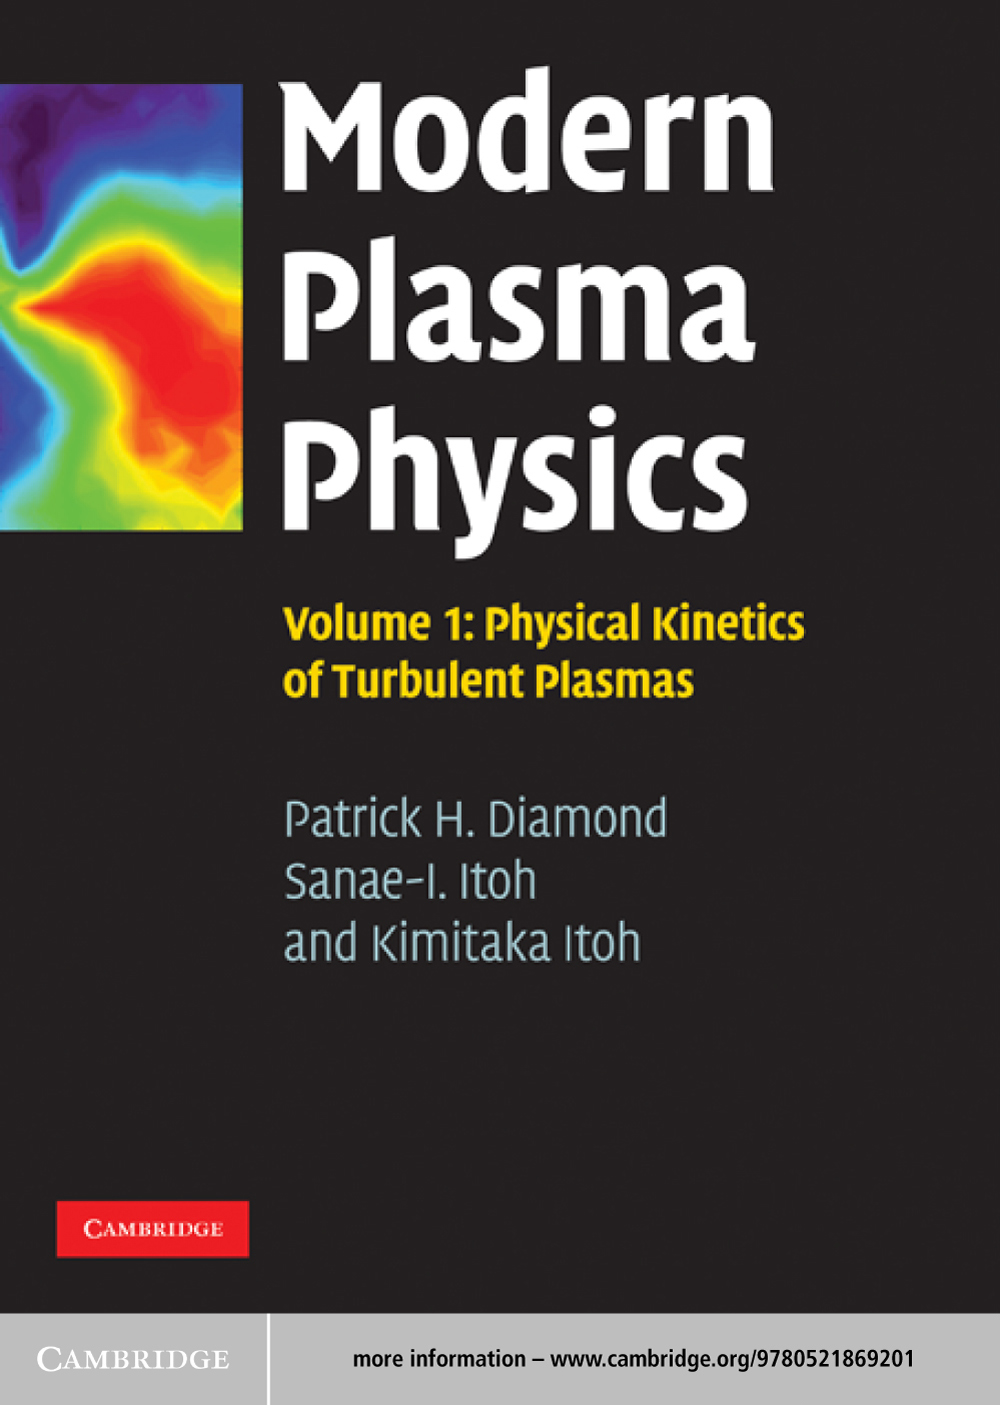 Modern Plasma Physics: Volume 1,  Physical Kinetics of Turbulent Plasmas